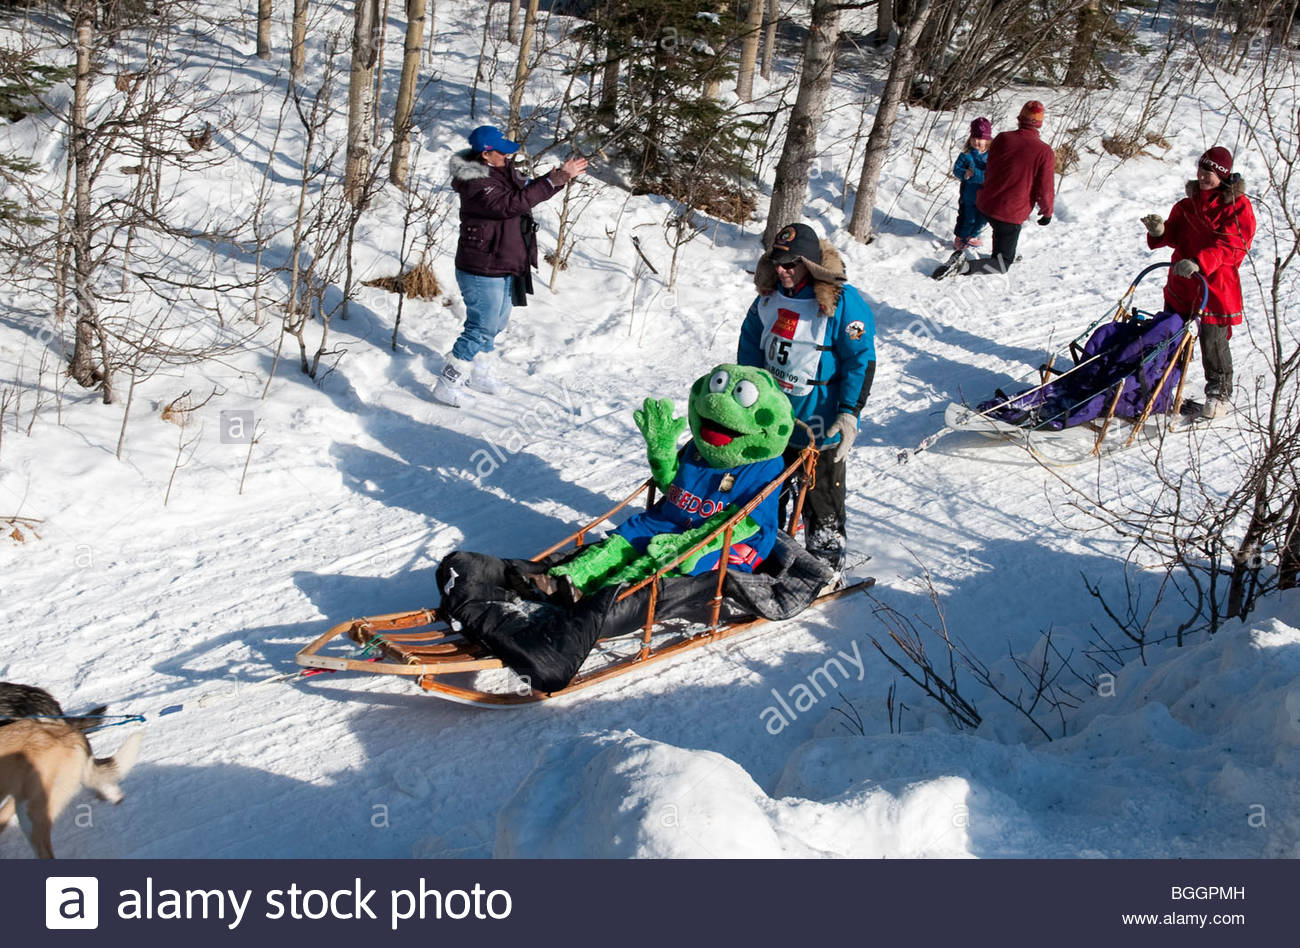 Alaska, Anchorage. the ceremonial start to the 2009 Iditarod sled dog race, along 4th Avenue - Stock Image